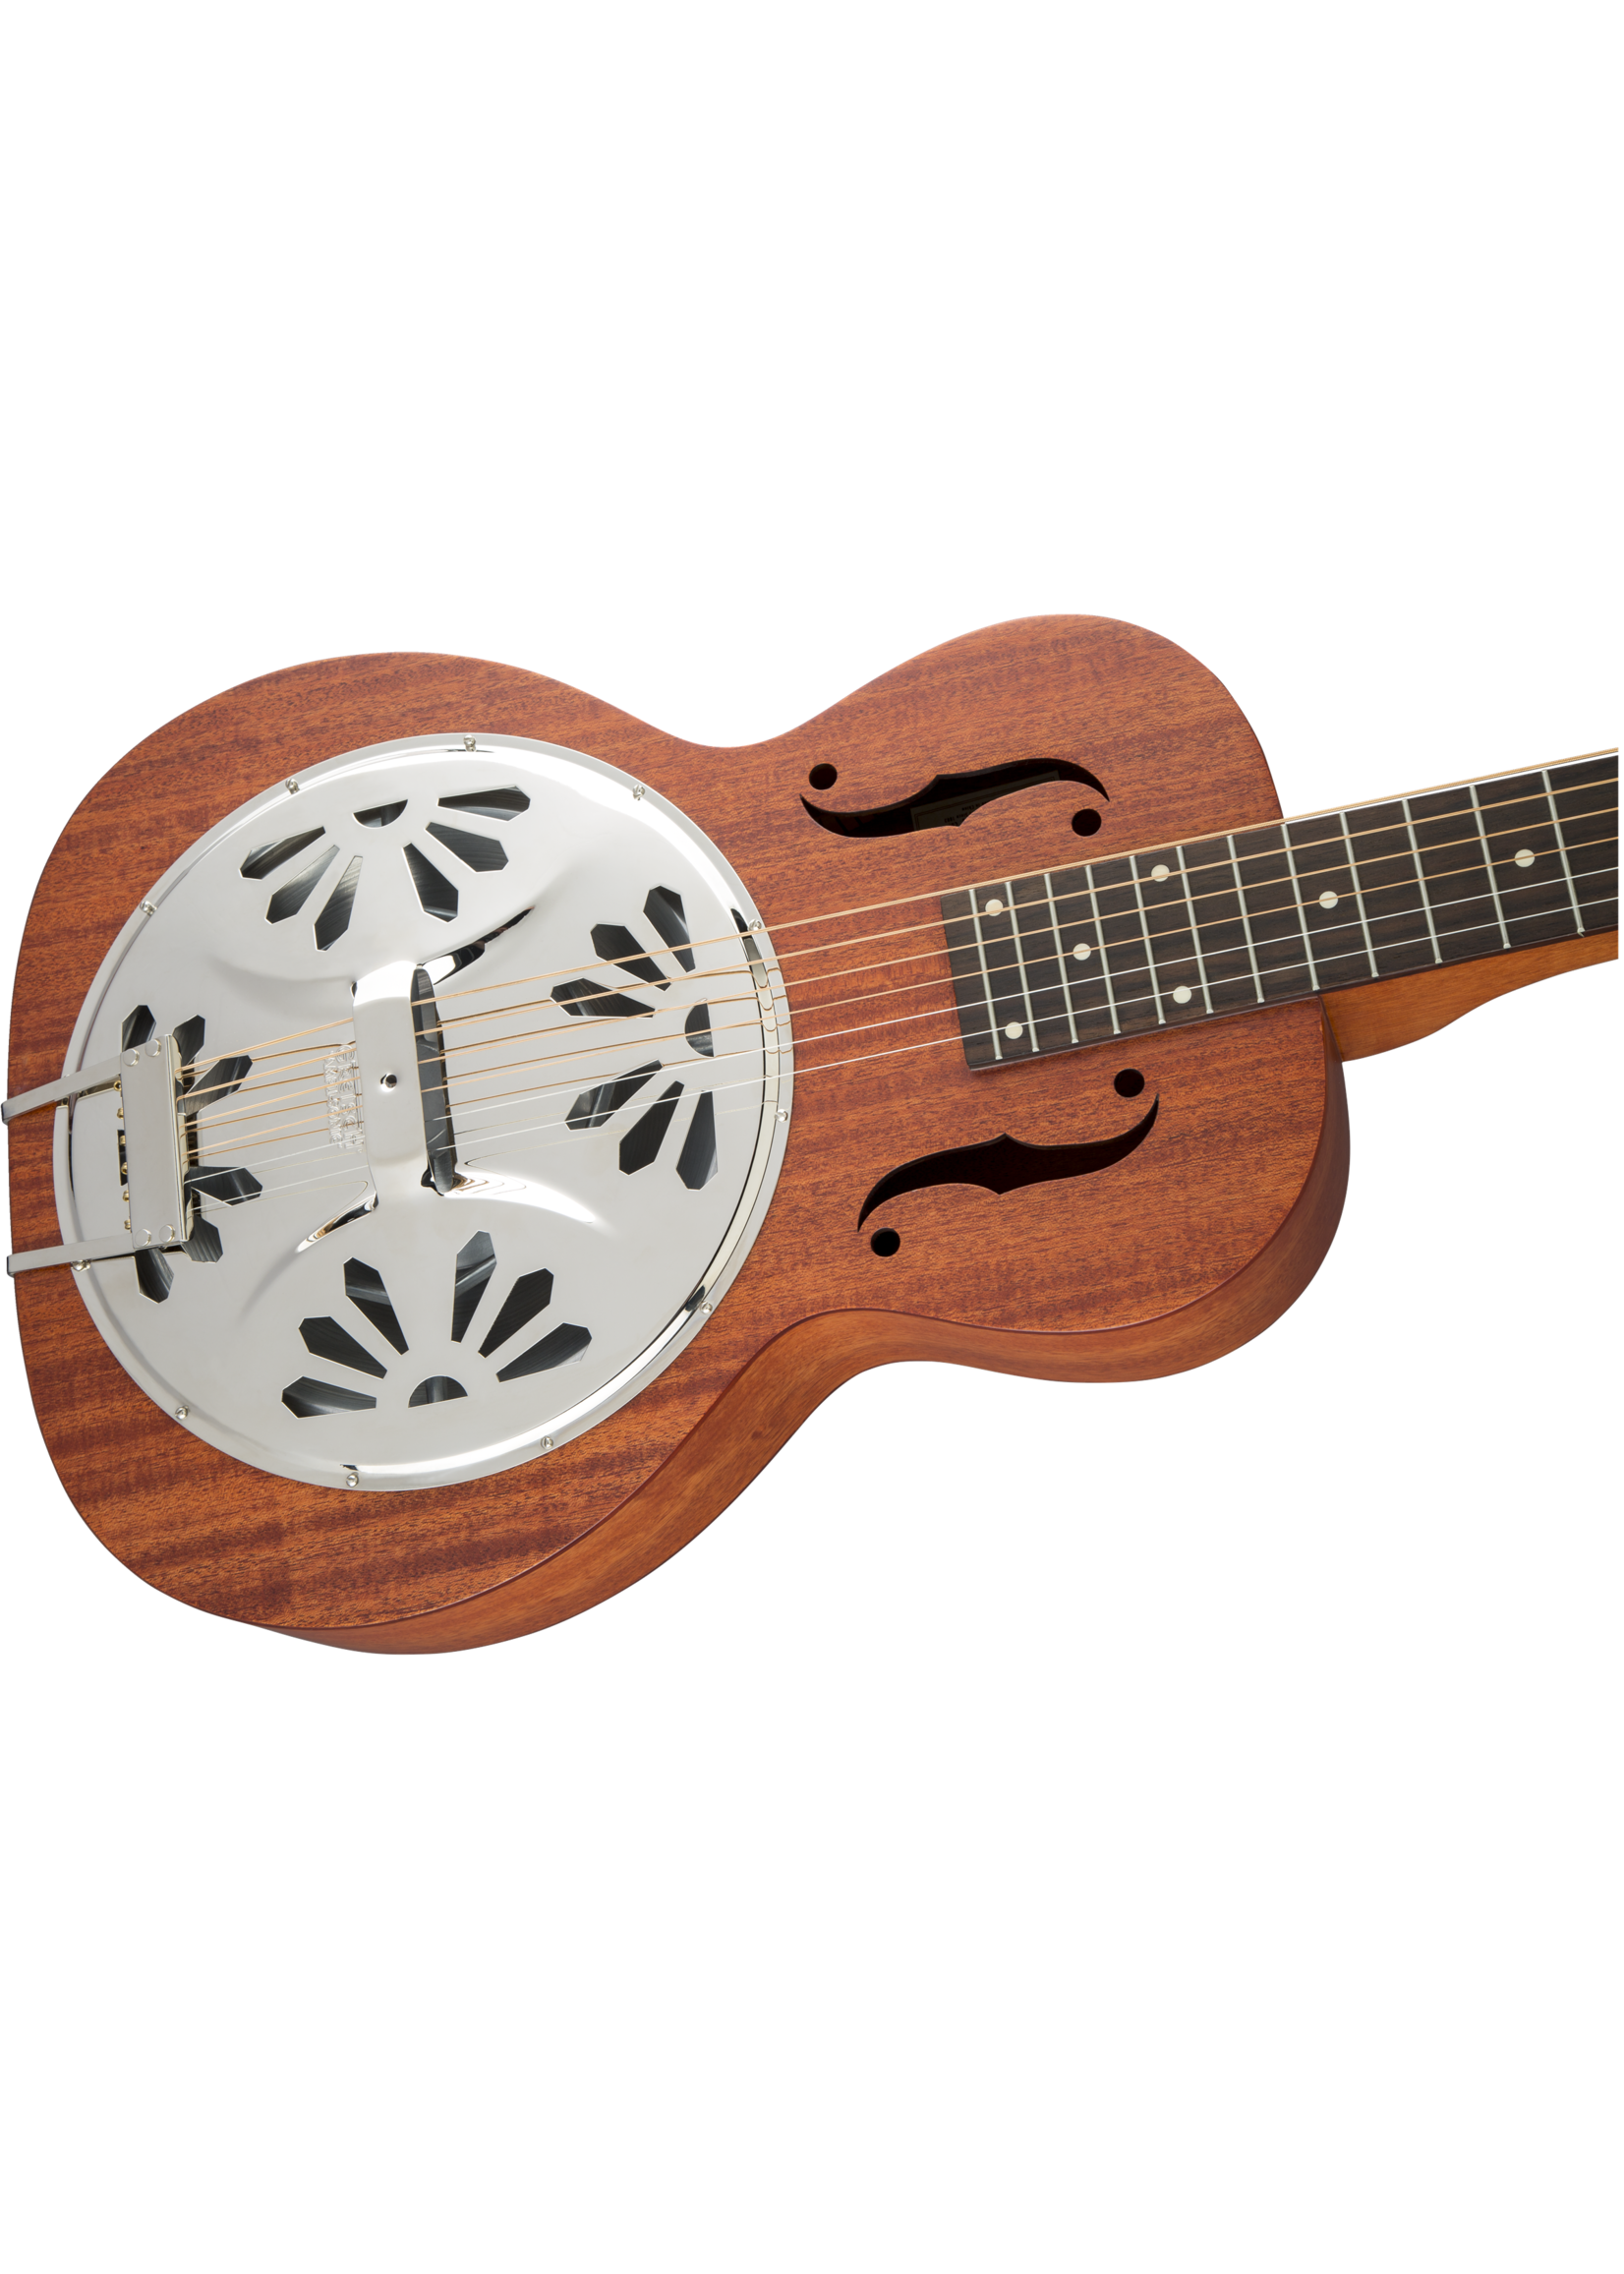 Gretsch Gretsch G9210 Boxcar Square-Neck Natural